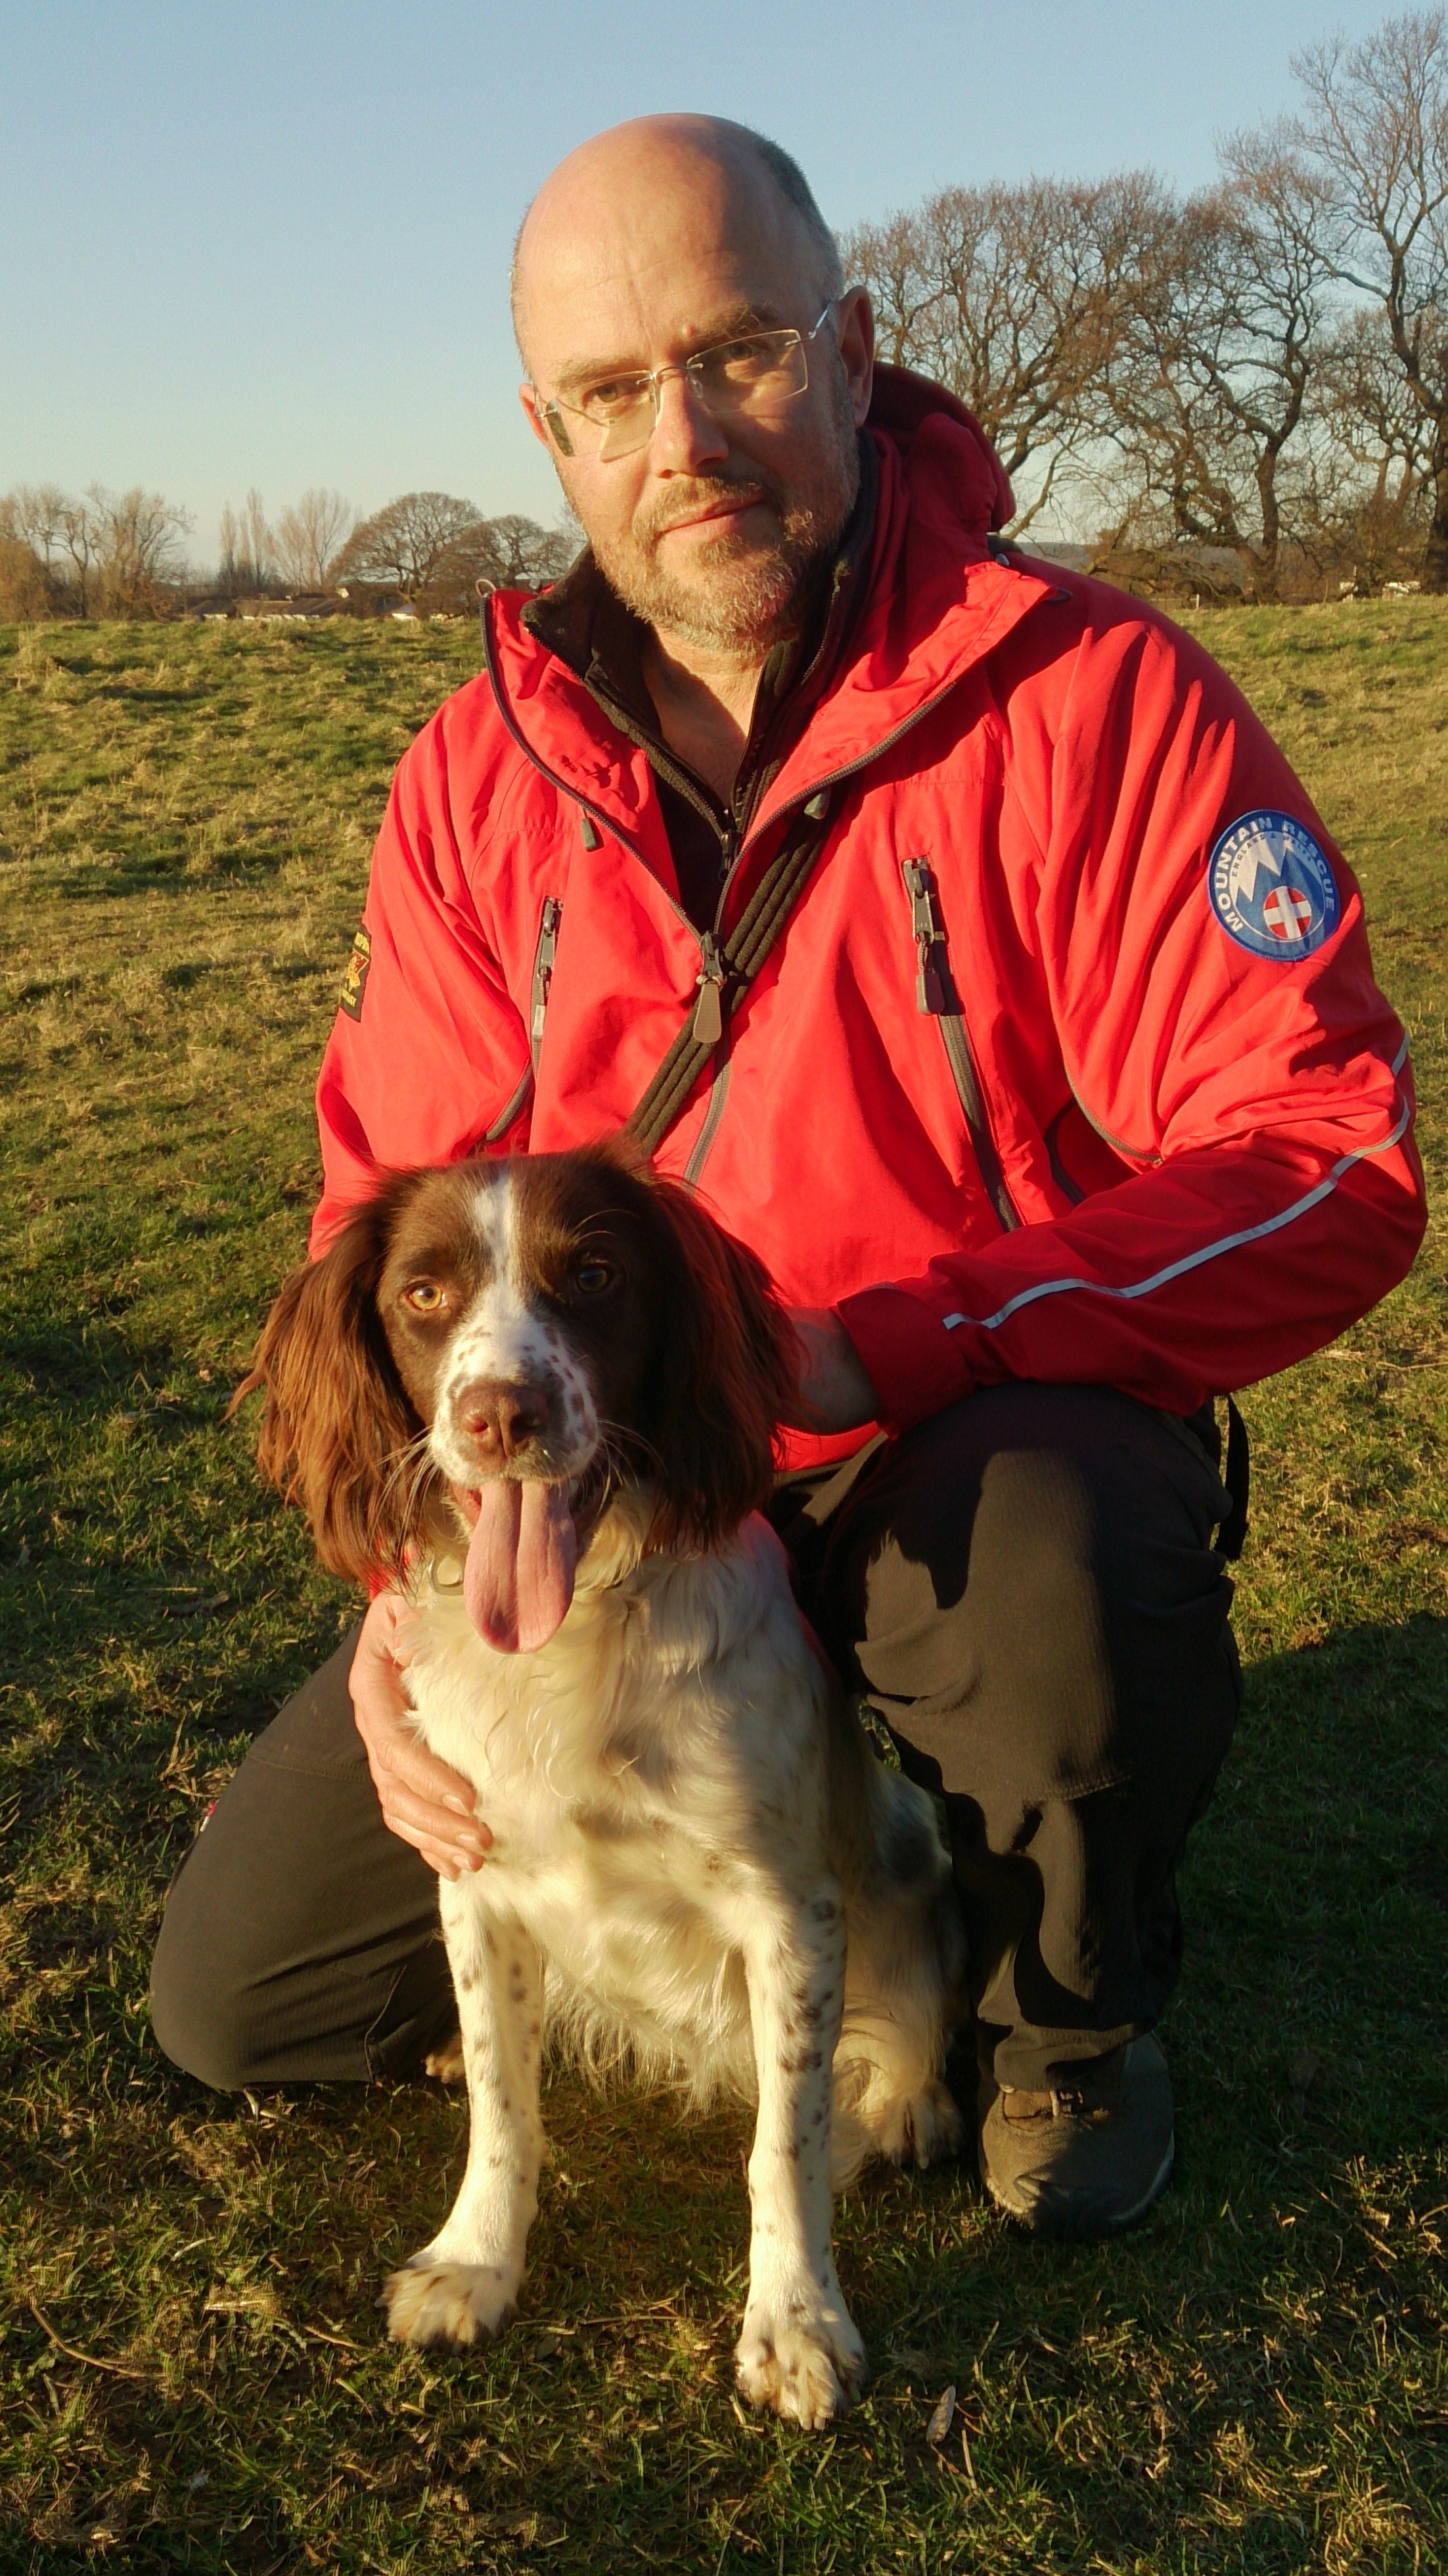 Trainee rescue dog Poppy with her owner and handler Richard Oldham.